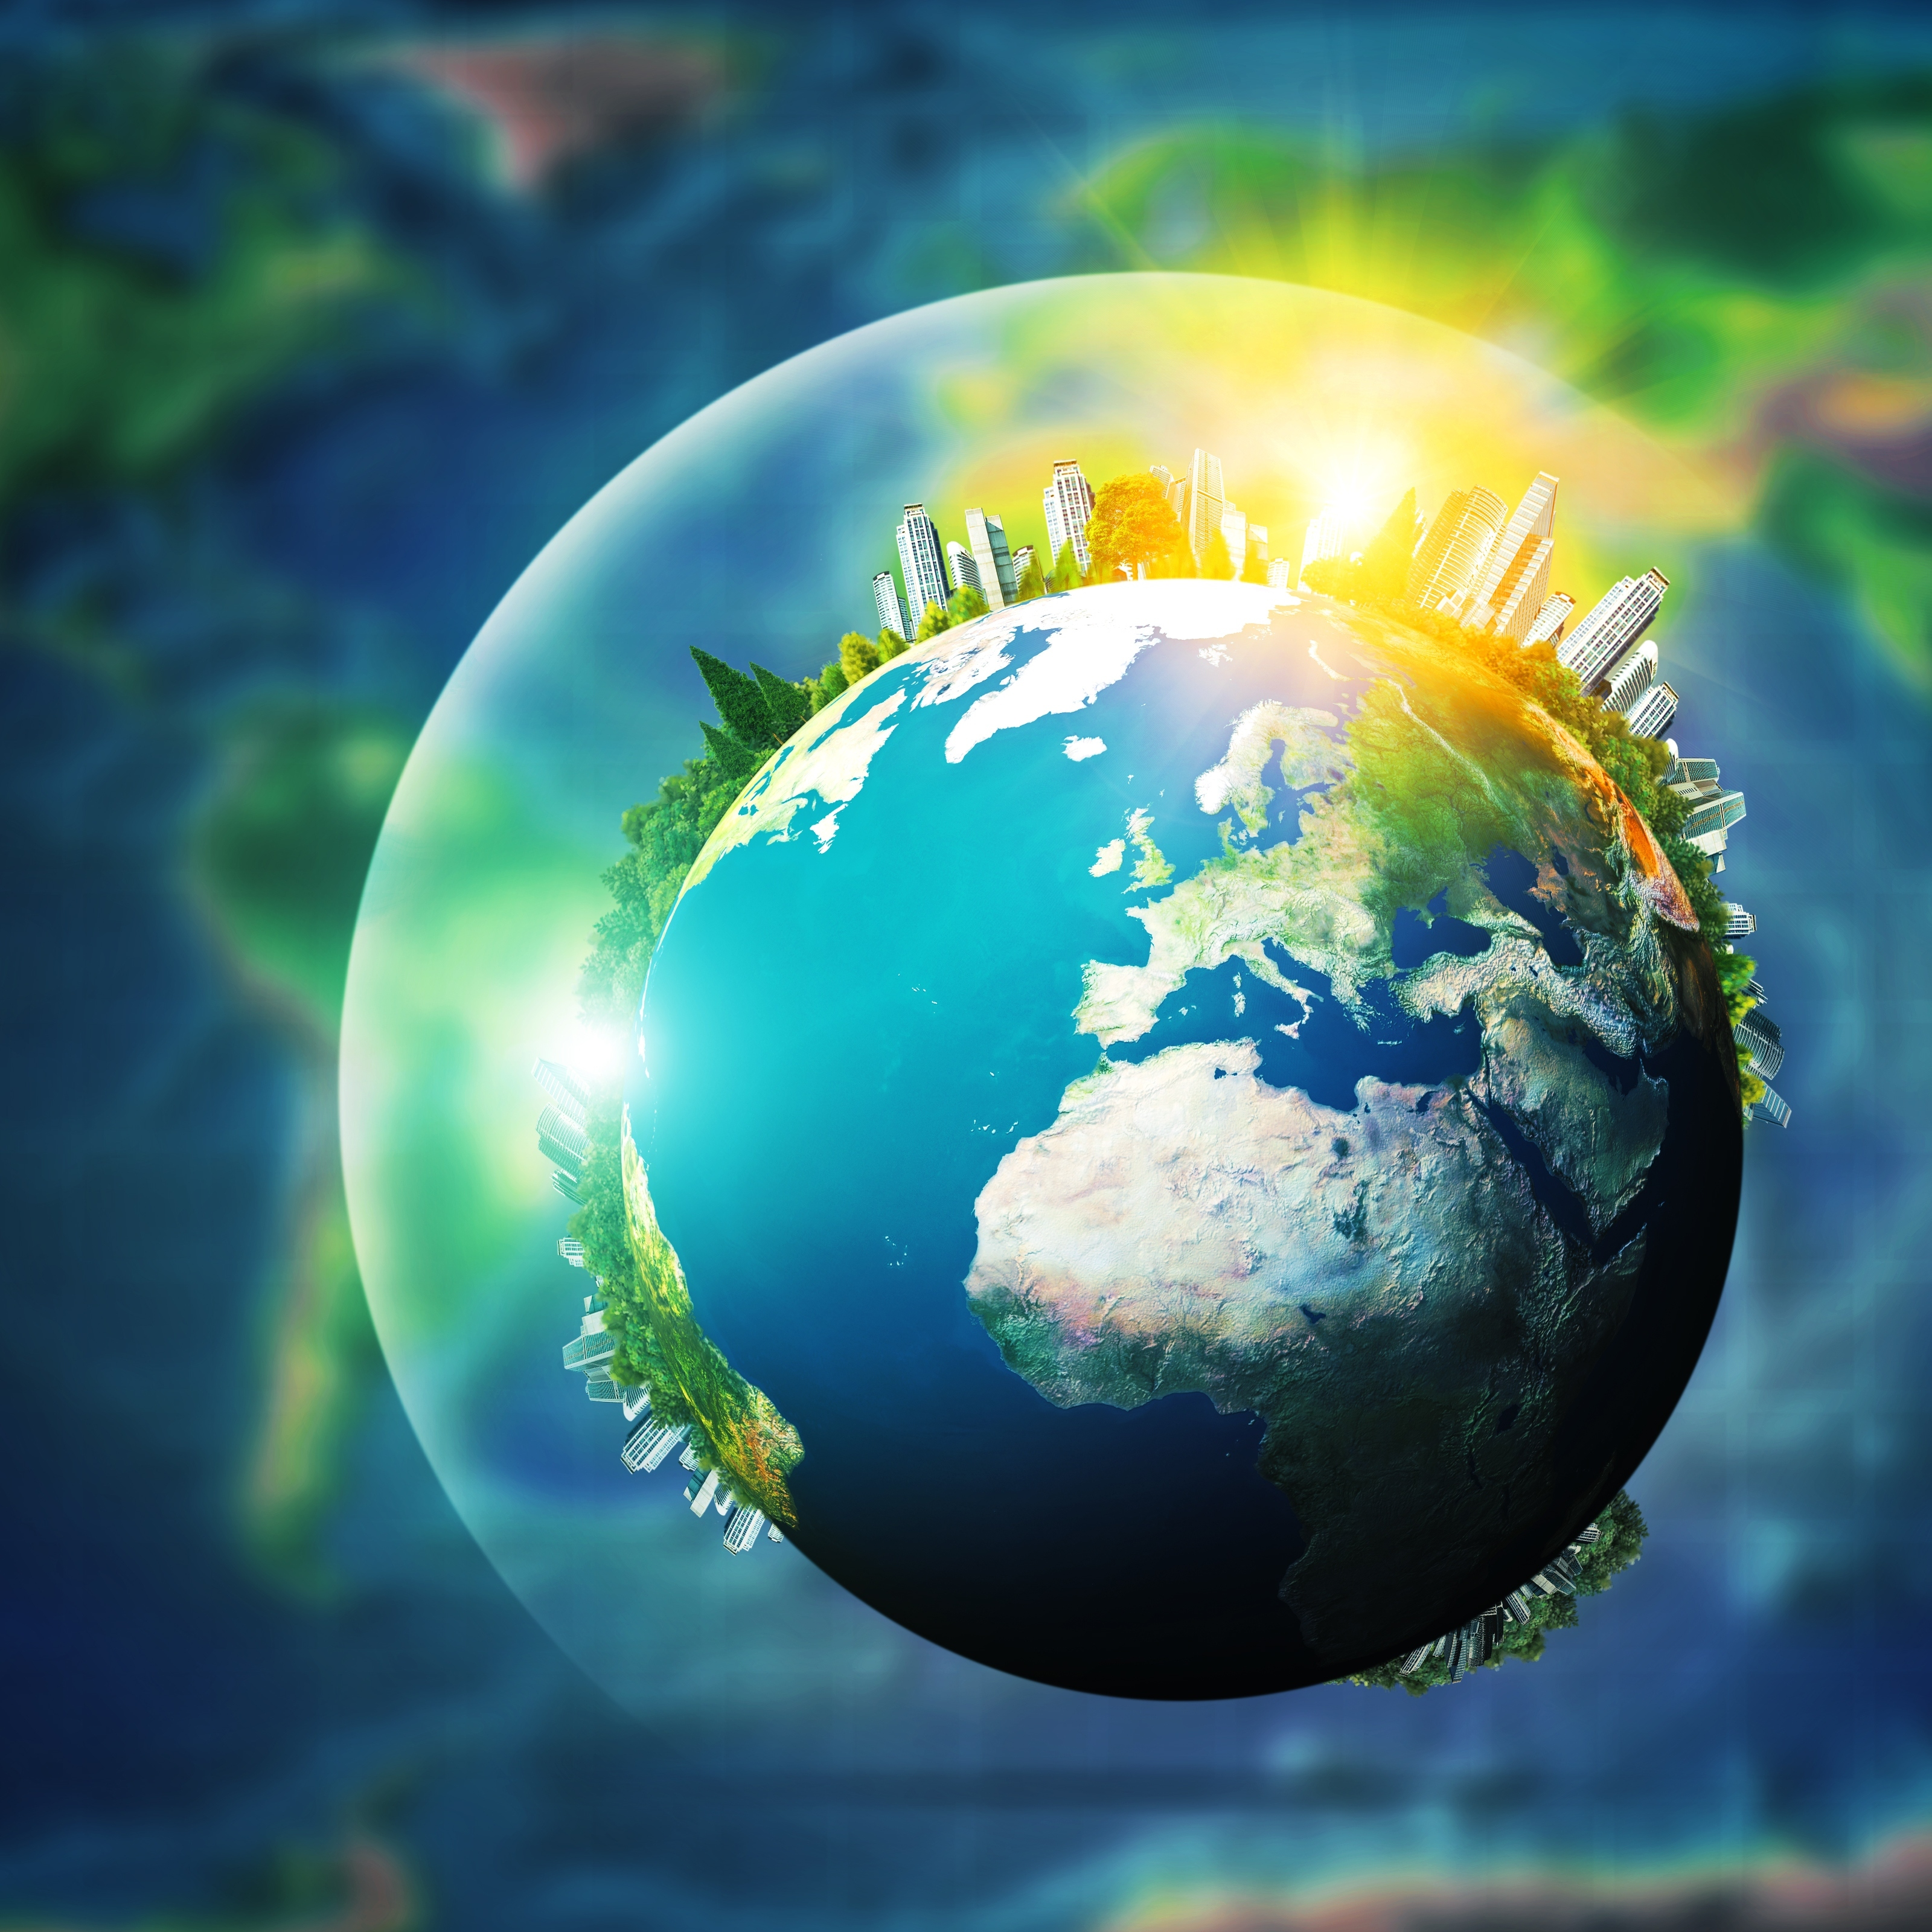 What greenhouse gases are released?